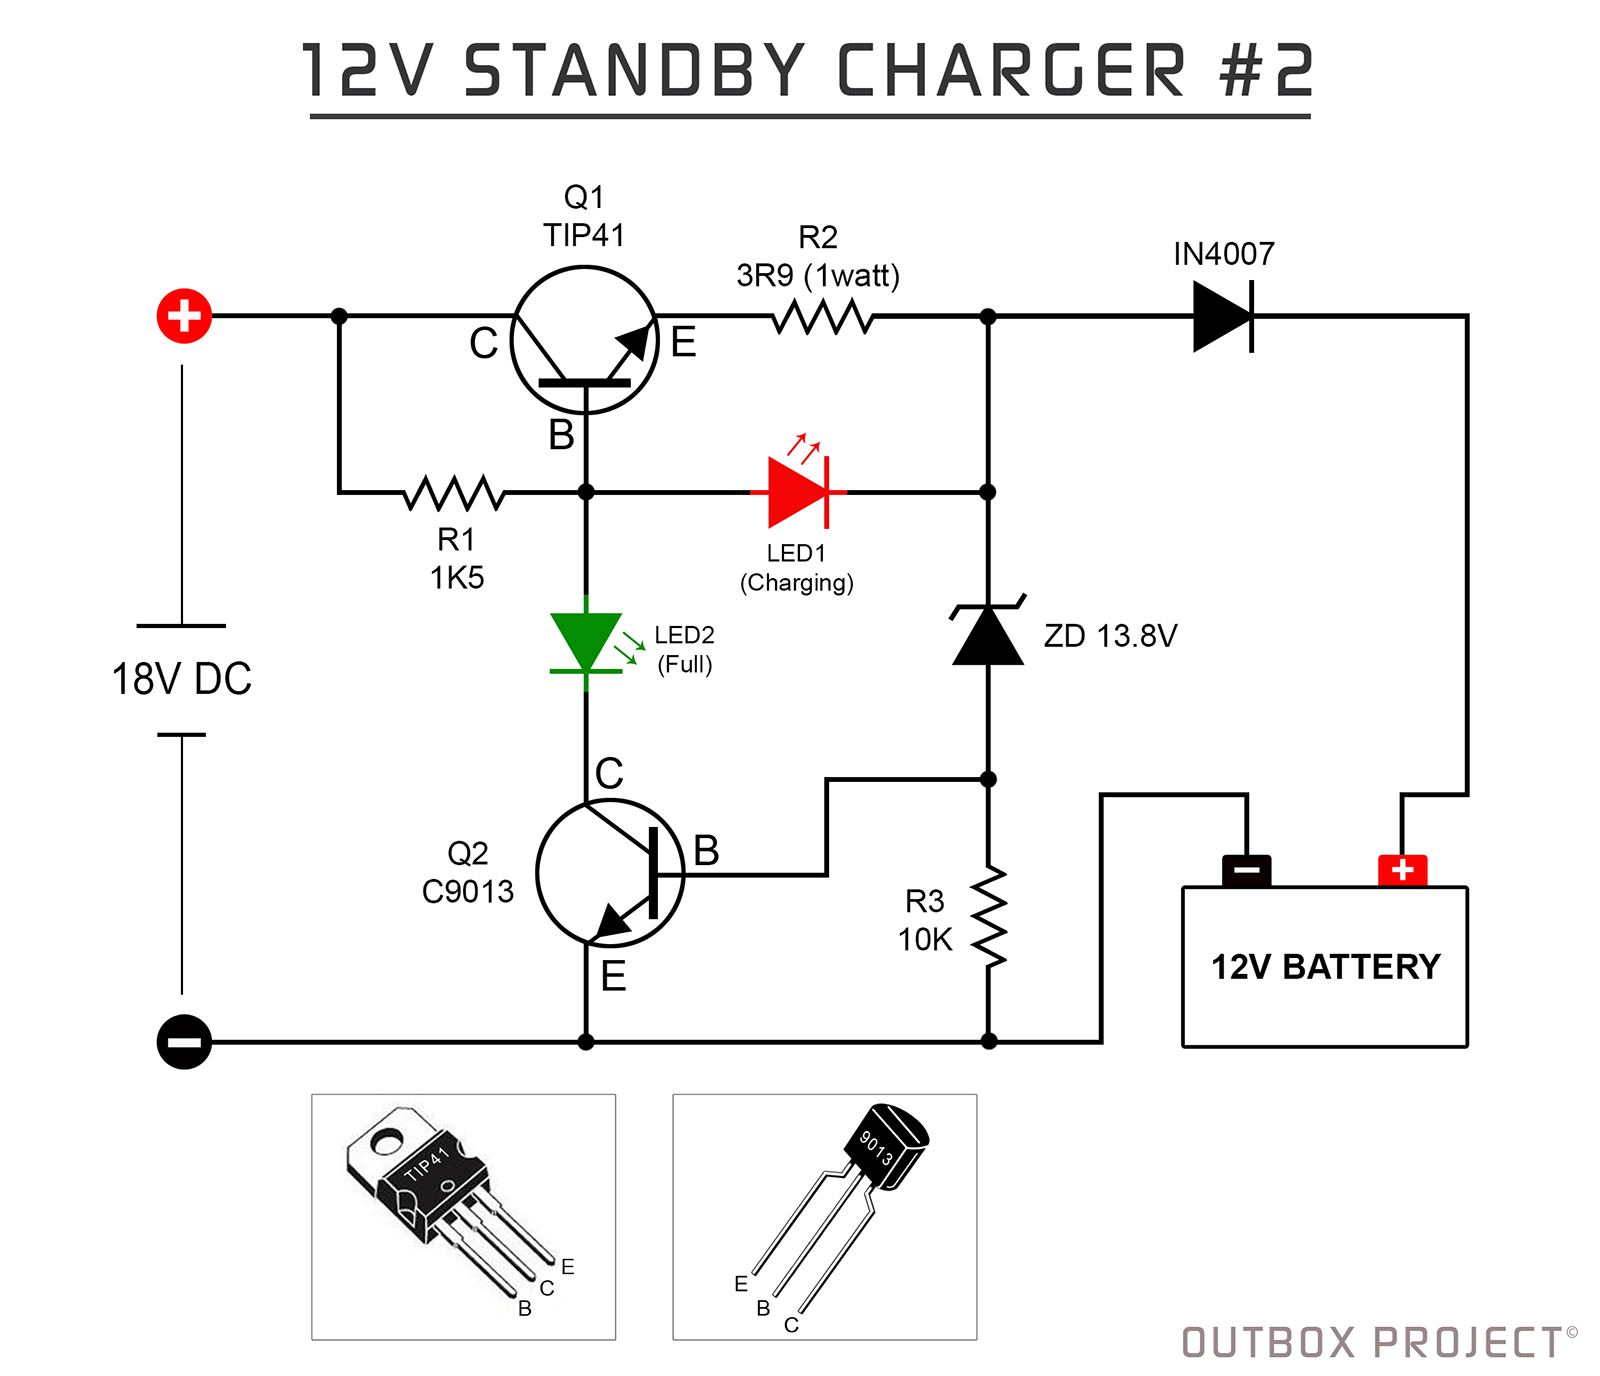 Simplest 12v Dc To 110v Ac Inverter Up 1kw Electronics 500w Mosfet Power From 220v Pinterest Circuit Projects And Electronic Schematics